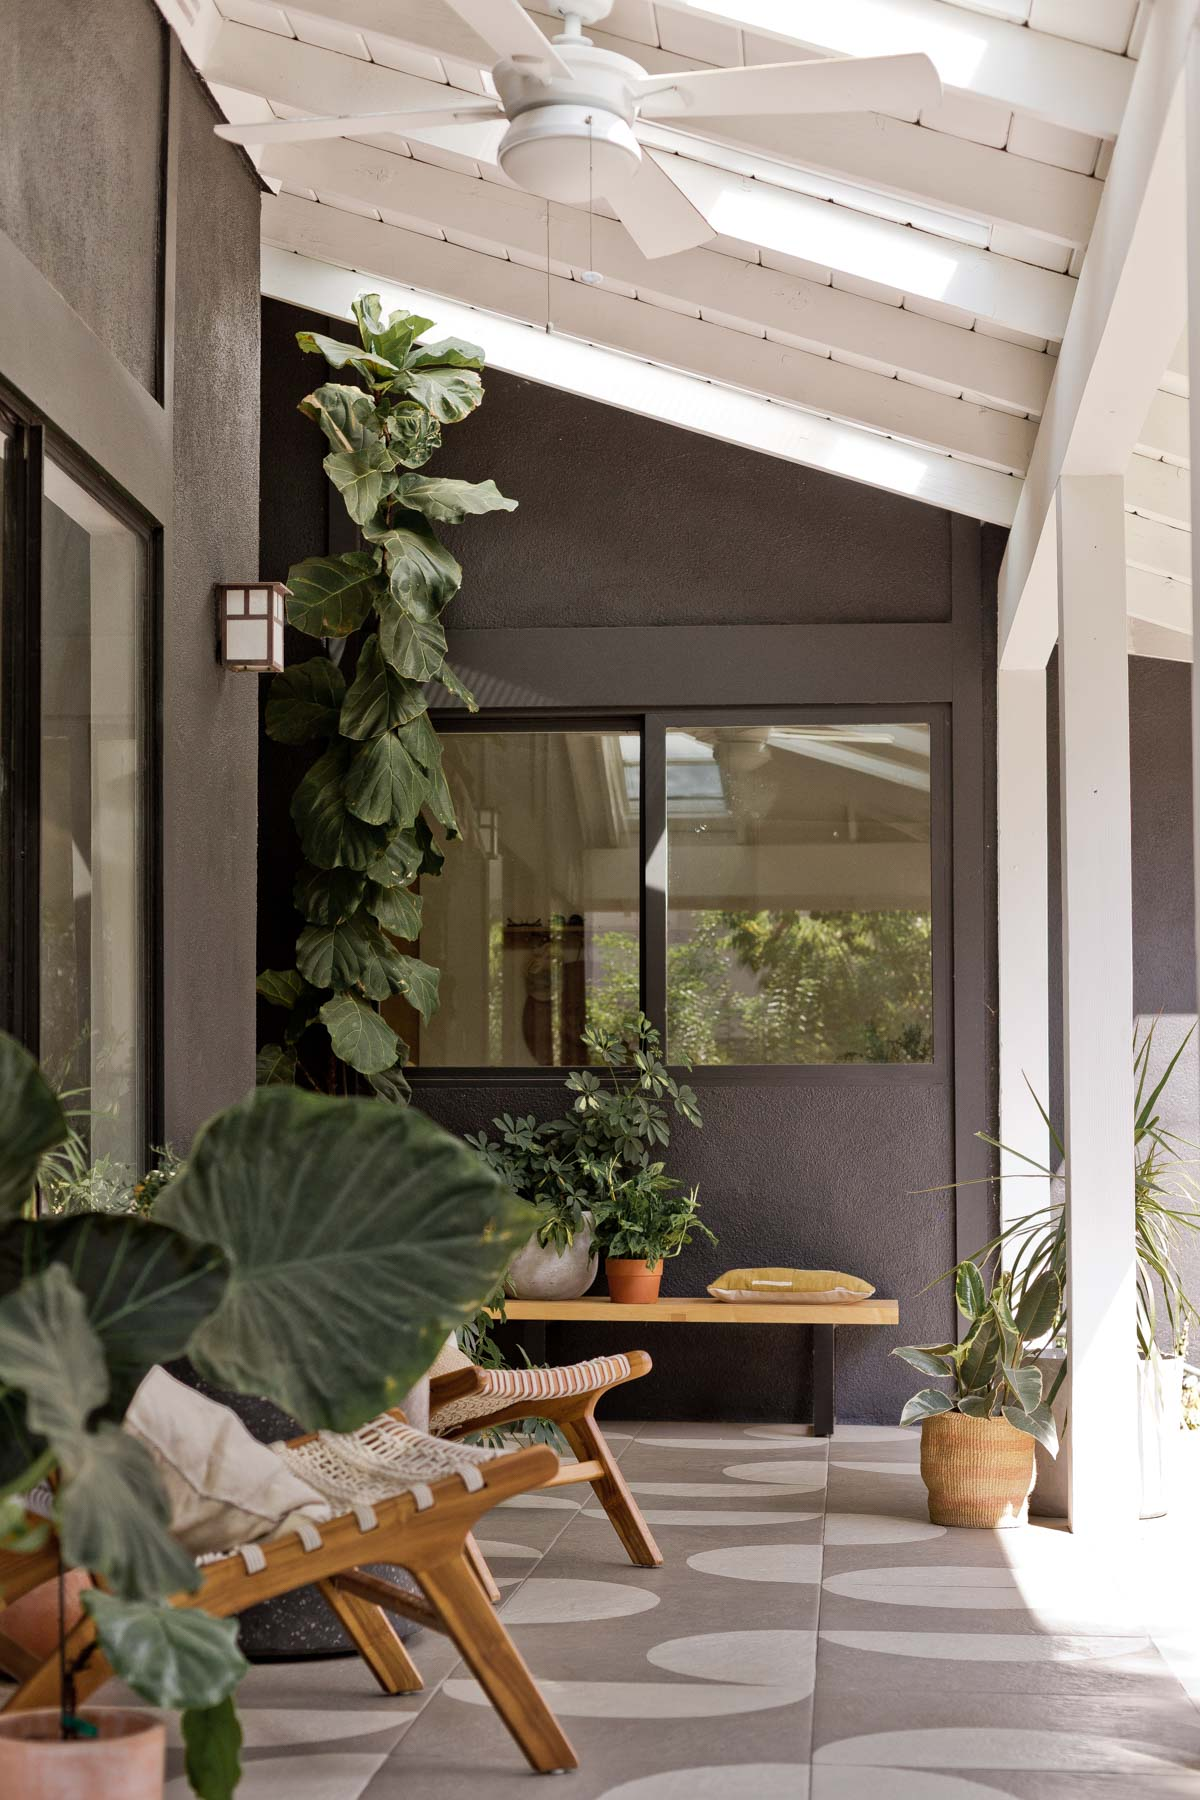 Modern front porch with dark walls and pattern tile floors.